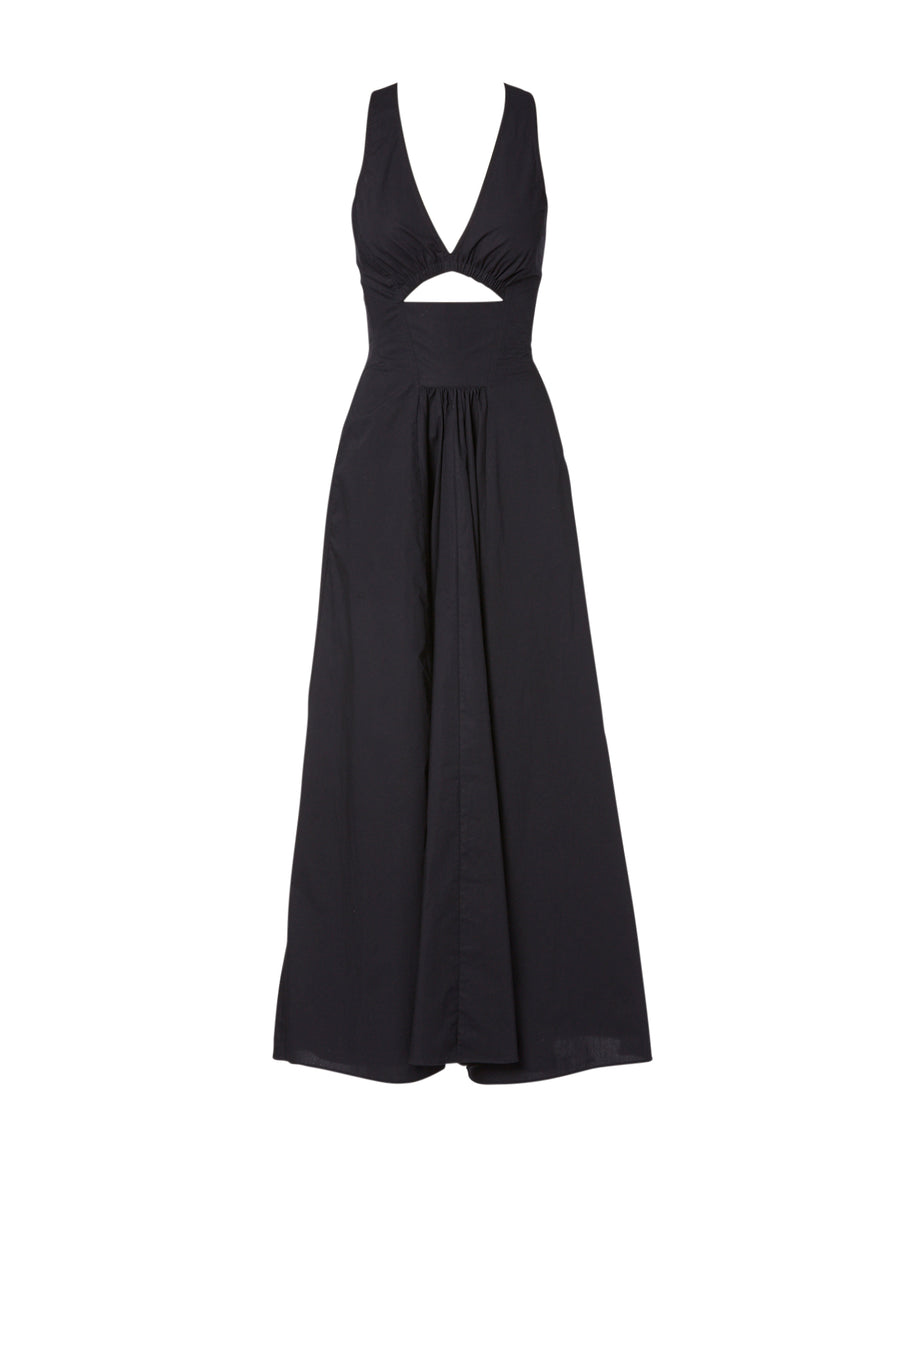 Cotton cross back Dress Navy, Maxi Length, Slim Fit